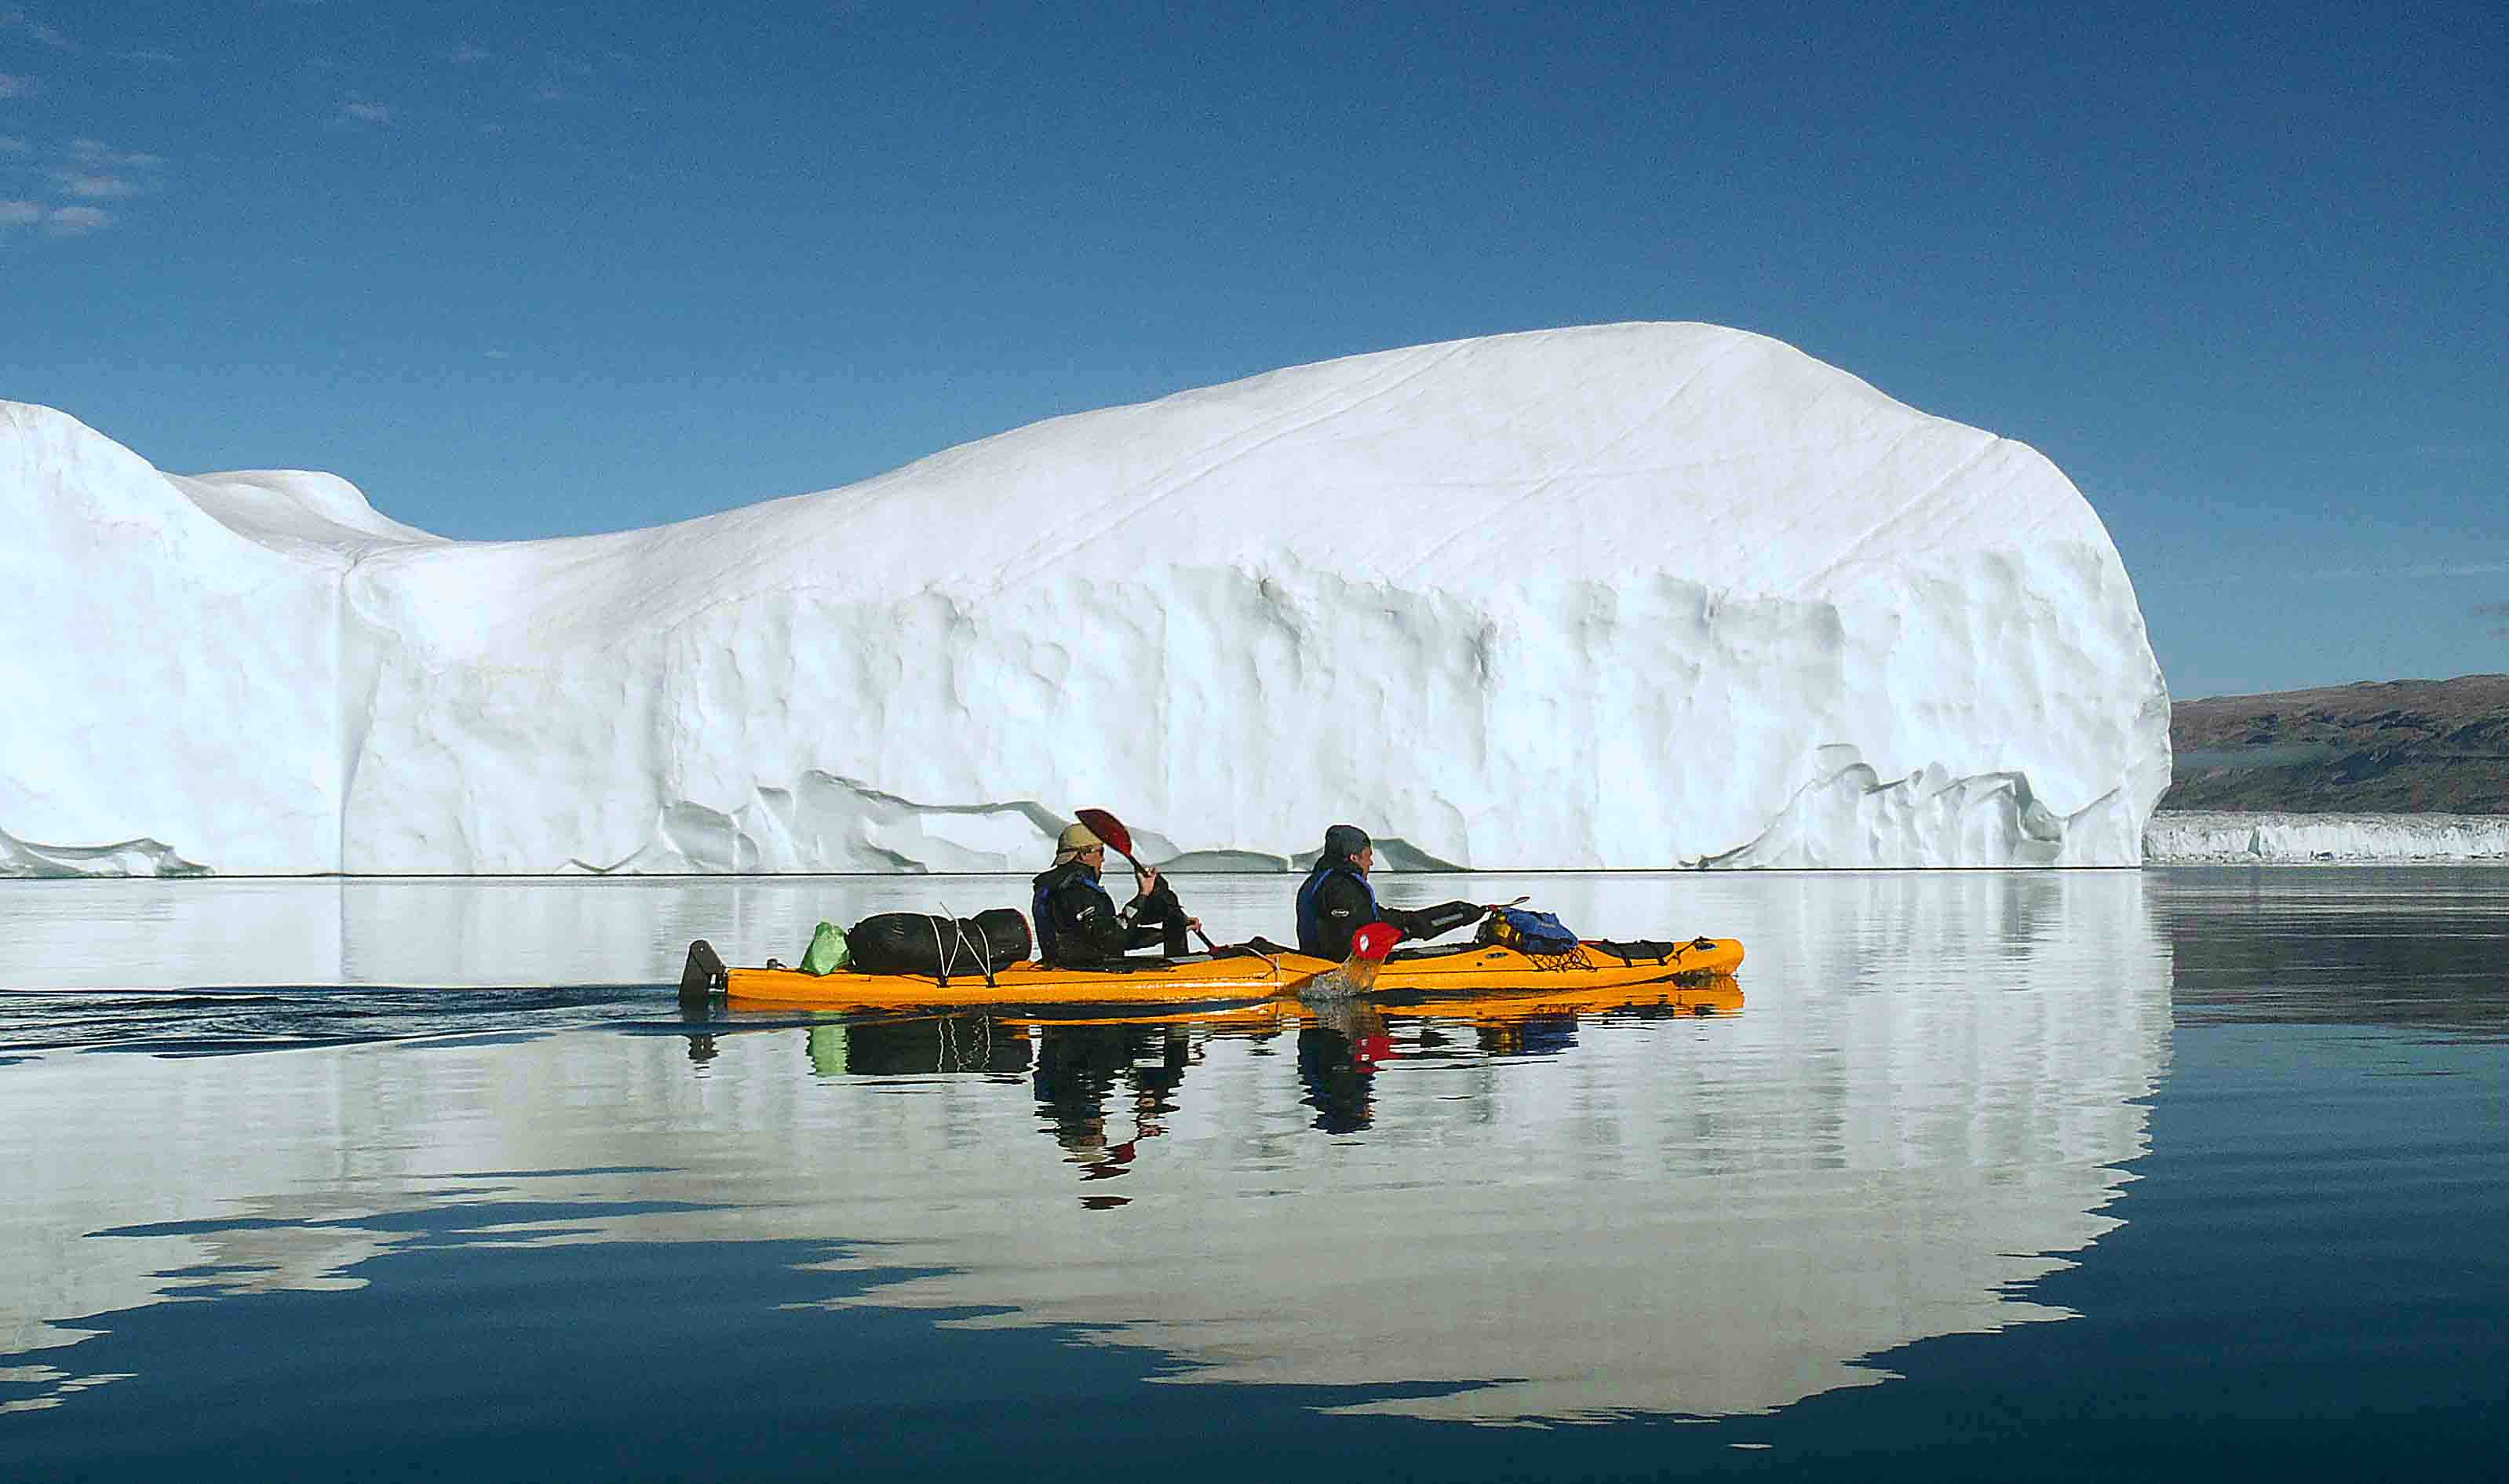 Ikayaking excursion among icebergs